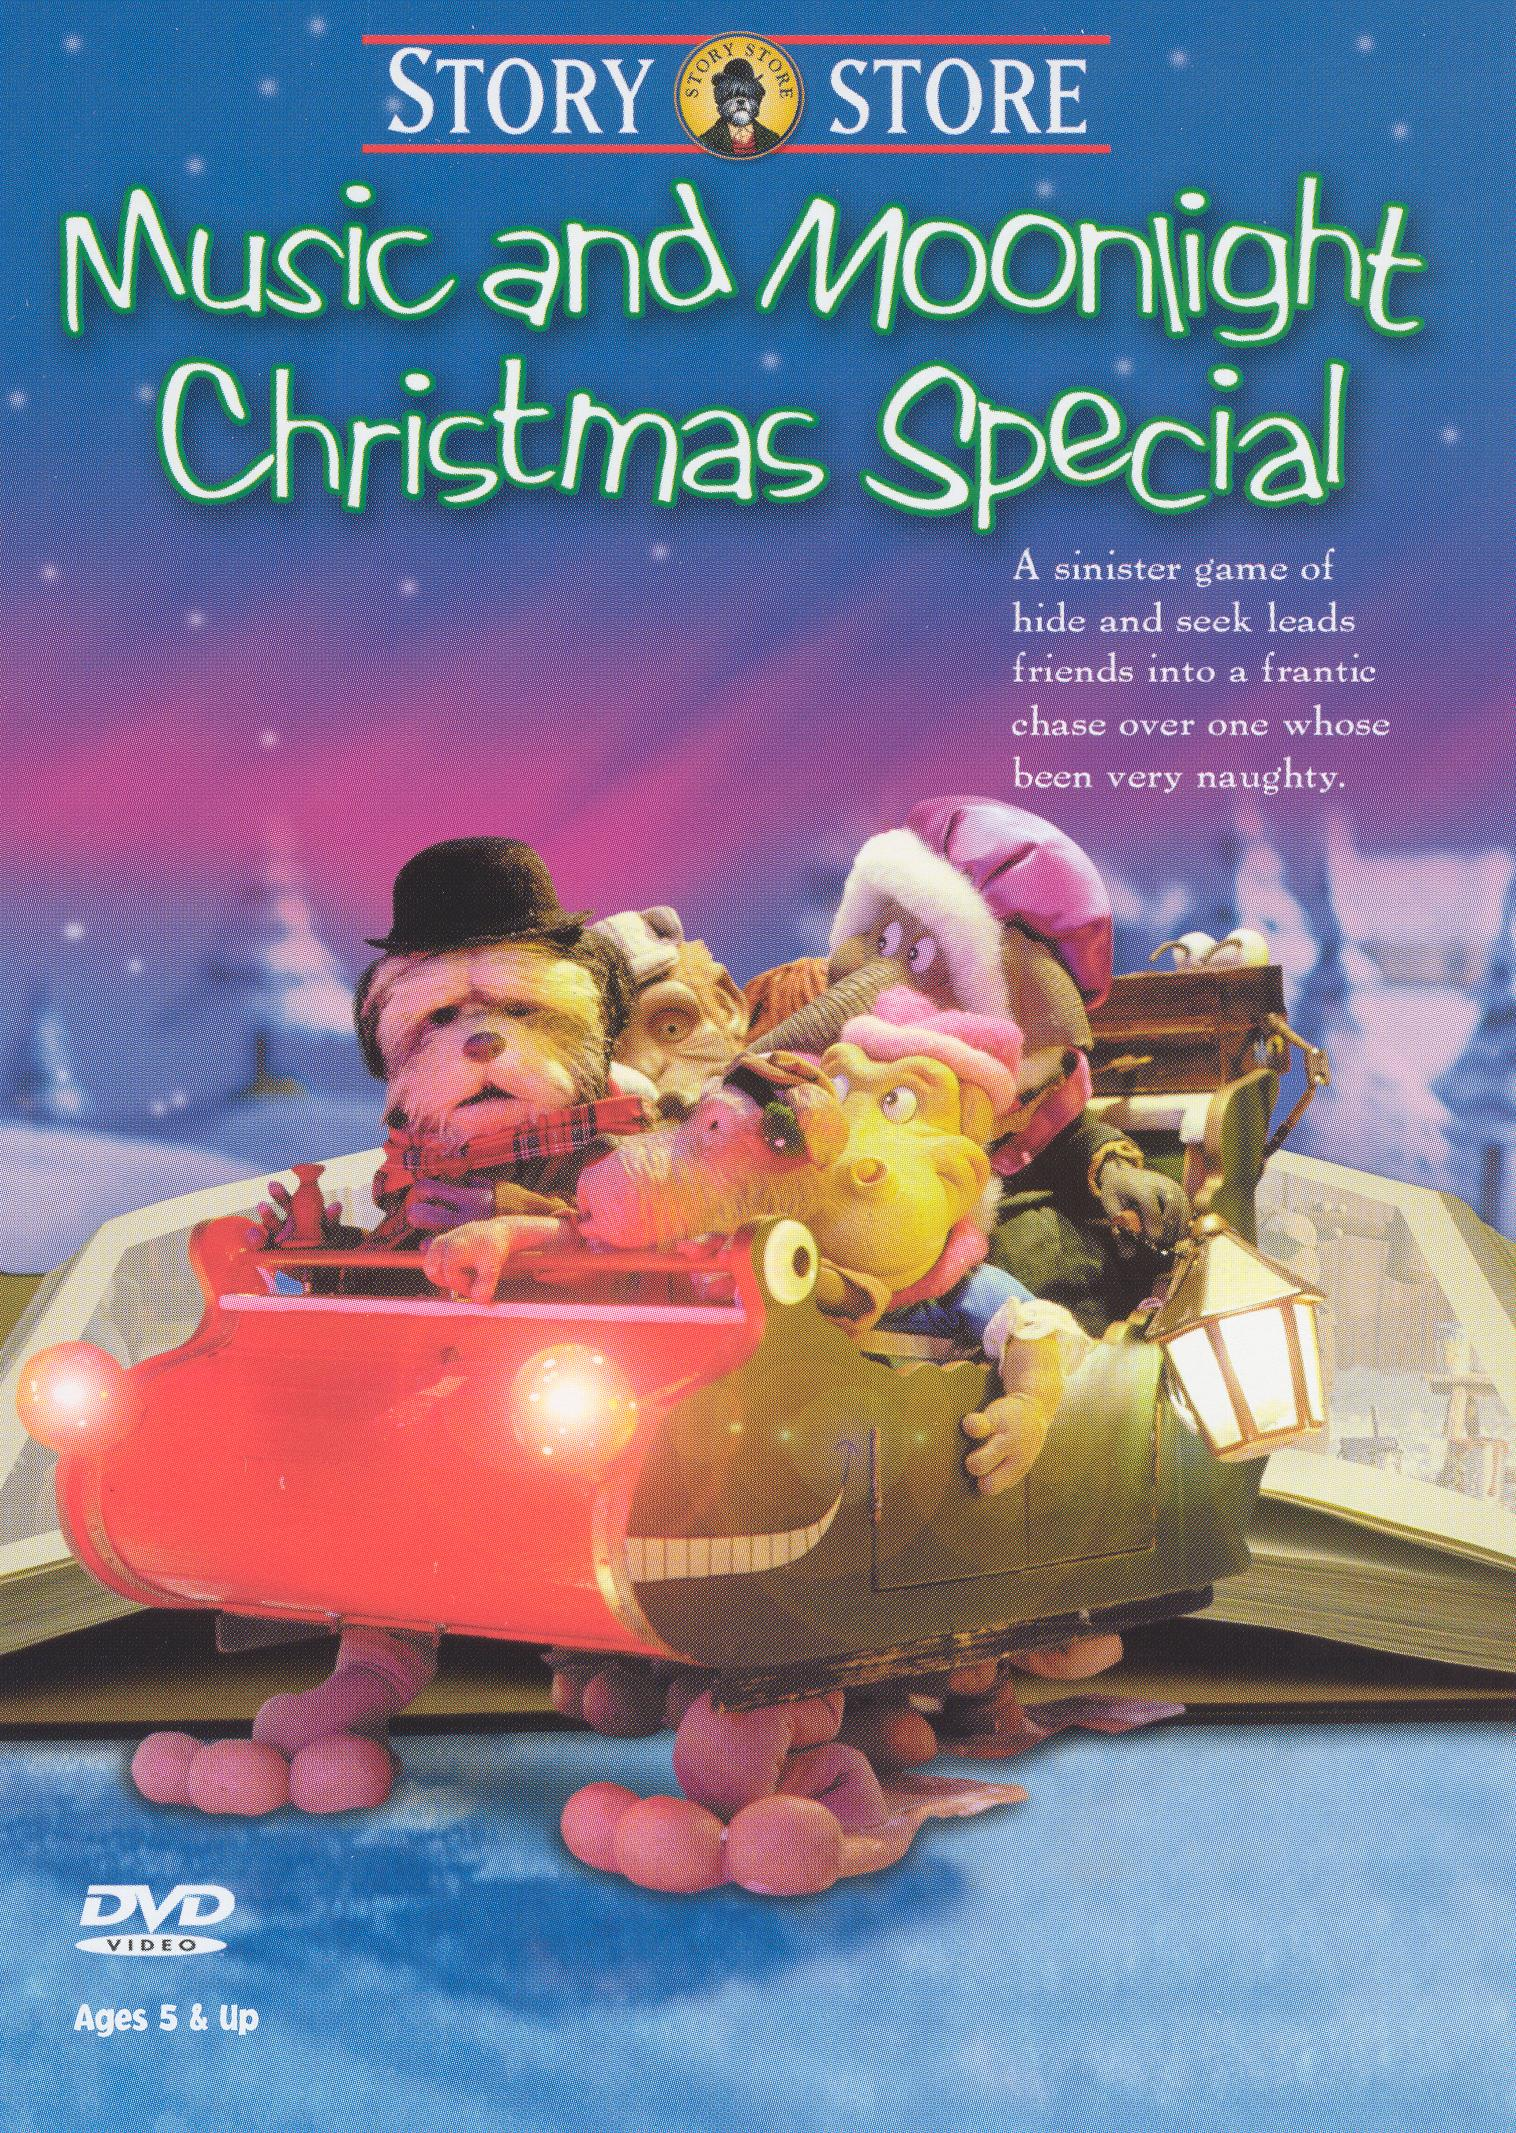 Story Store: Music and Moonlight Christmas Special